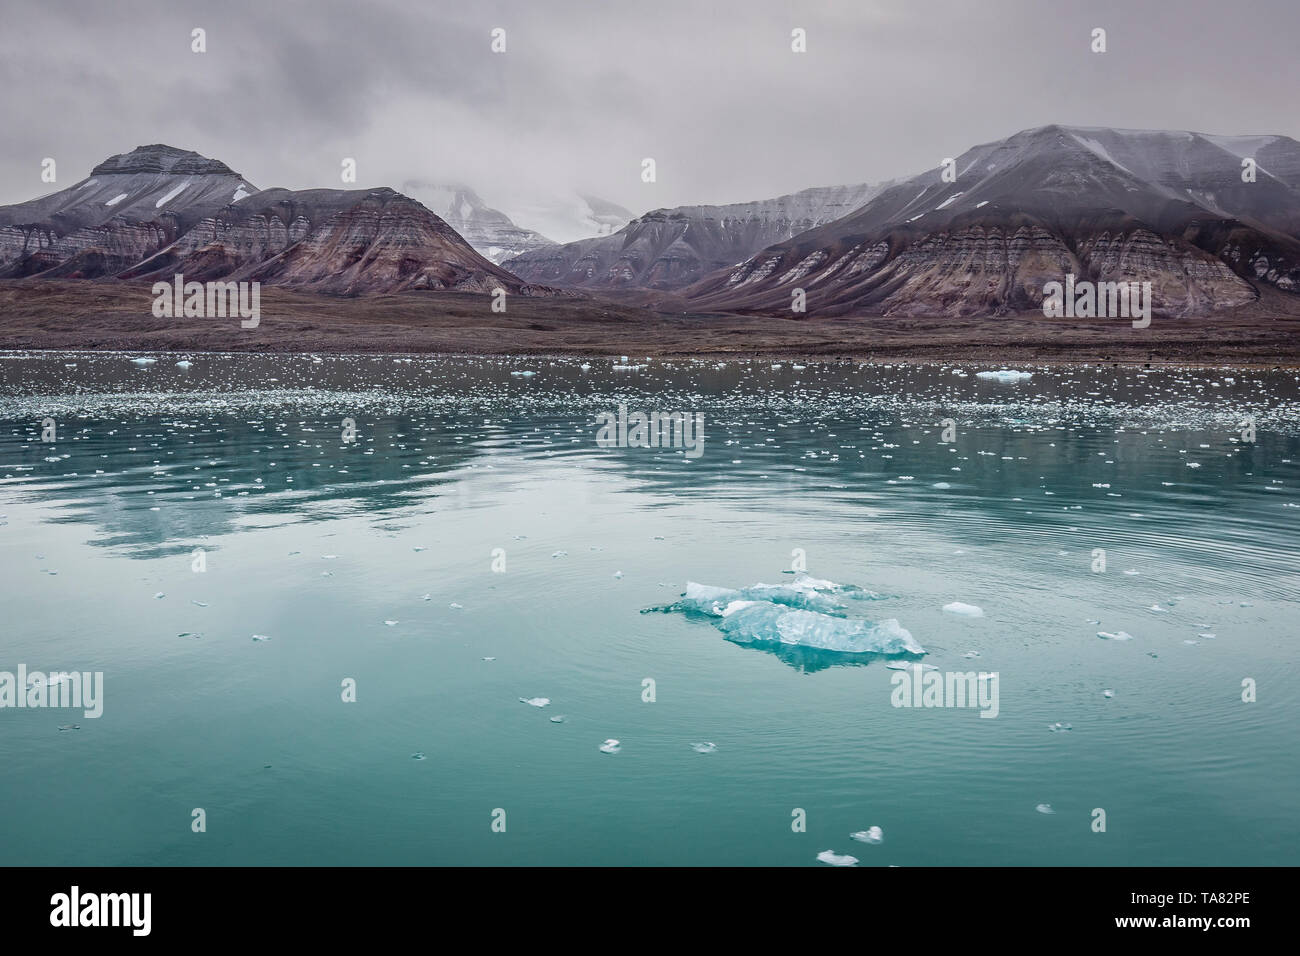 Pieces of glacier ice Nordenskiöldbreen near Pyramiden, snowcaped mountain, on the coast of Billefjord, Svalbard. Norway - Stock Image